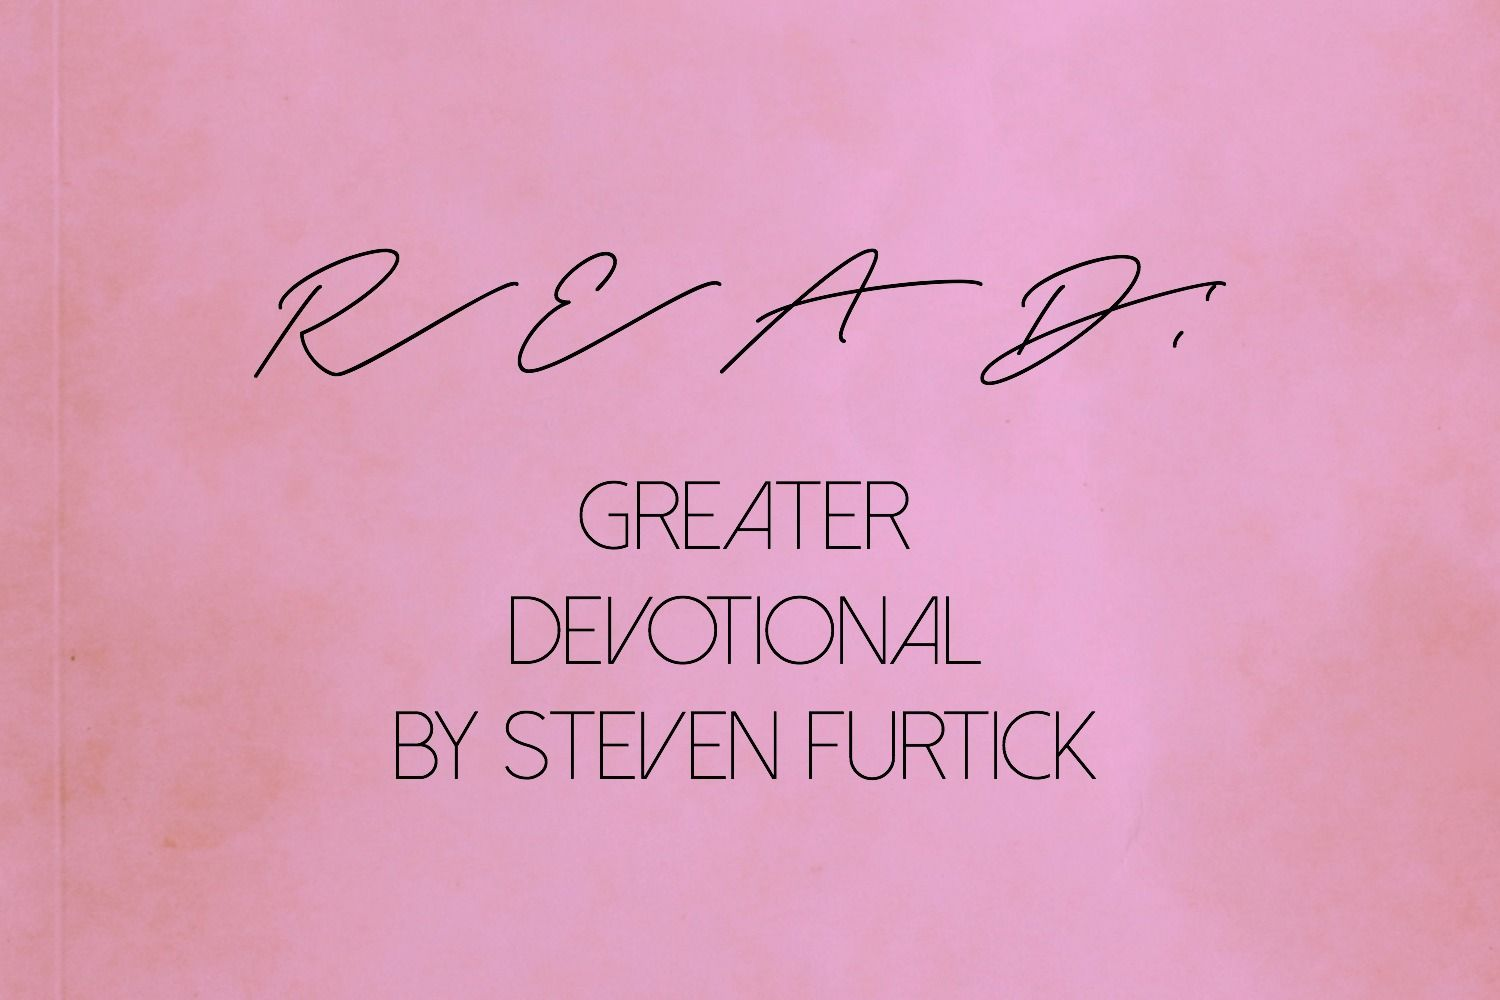 Read: Greater Devotional by Steven Furtick | Alaska Renee